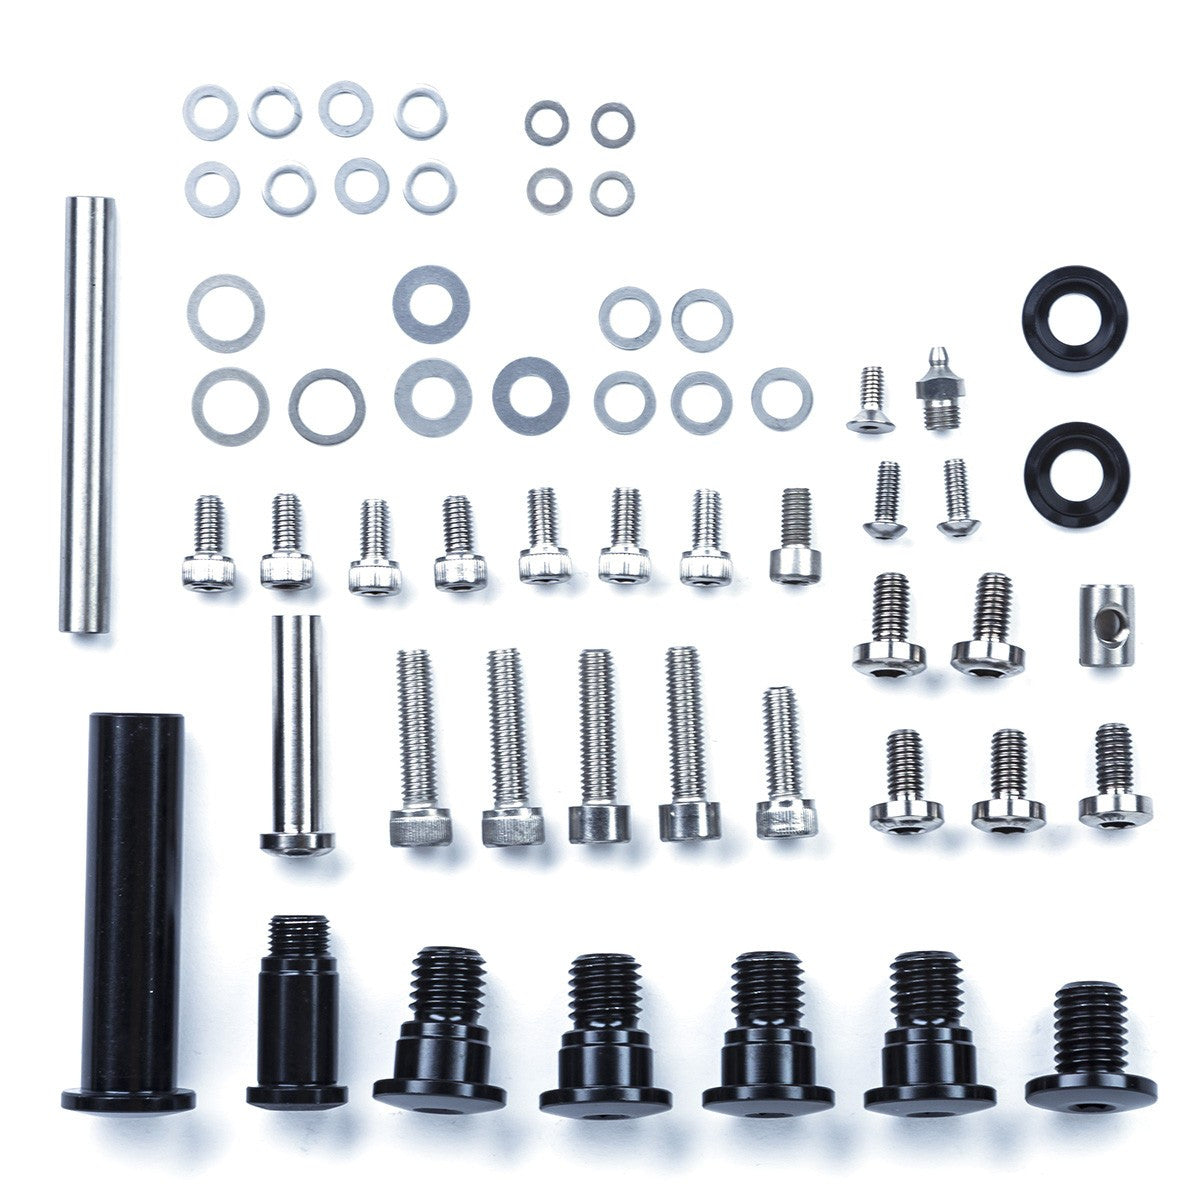 Yeti Parts - 303-WC Hardware Kit